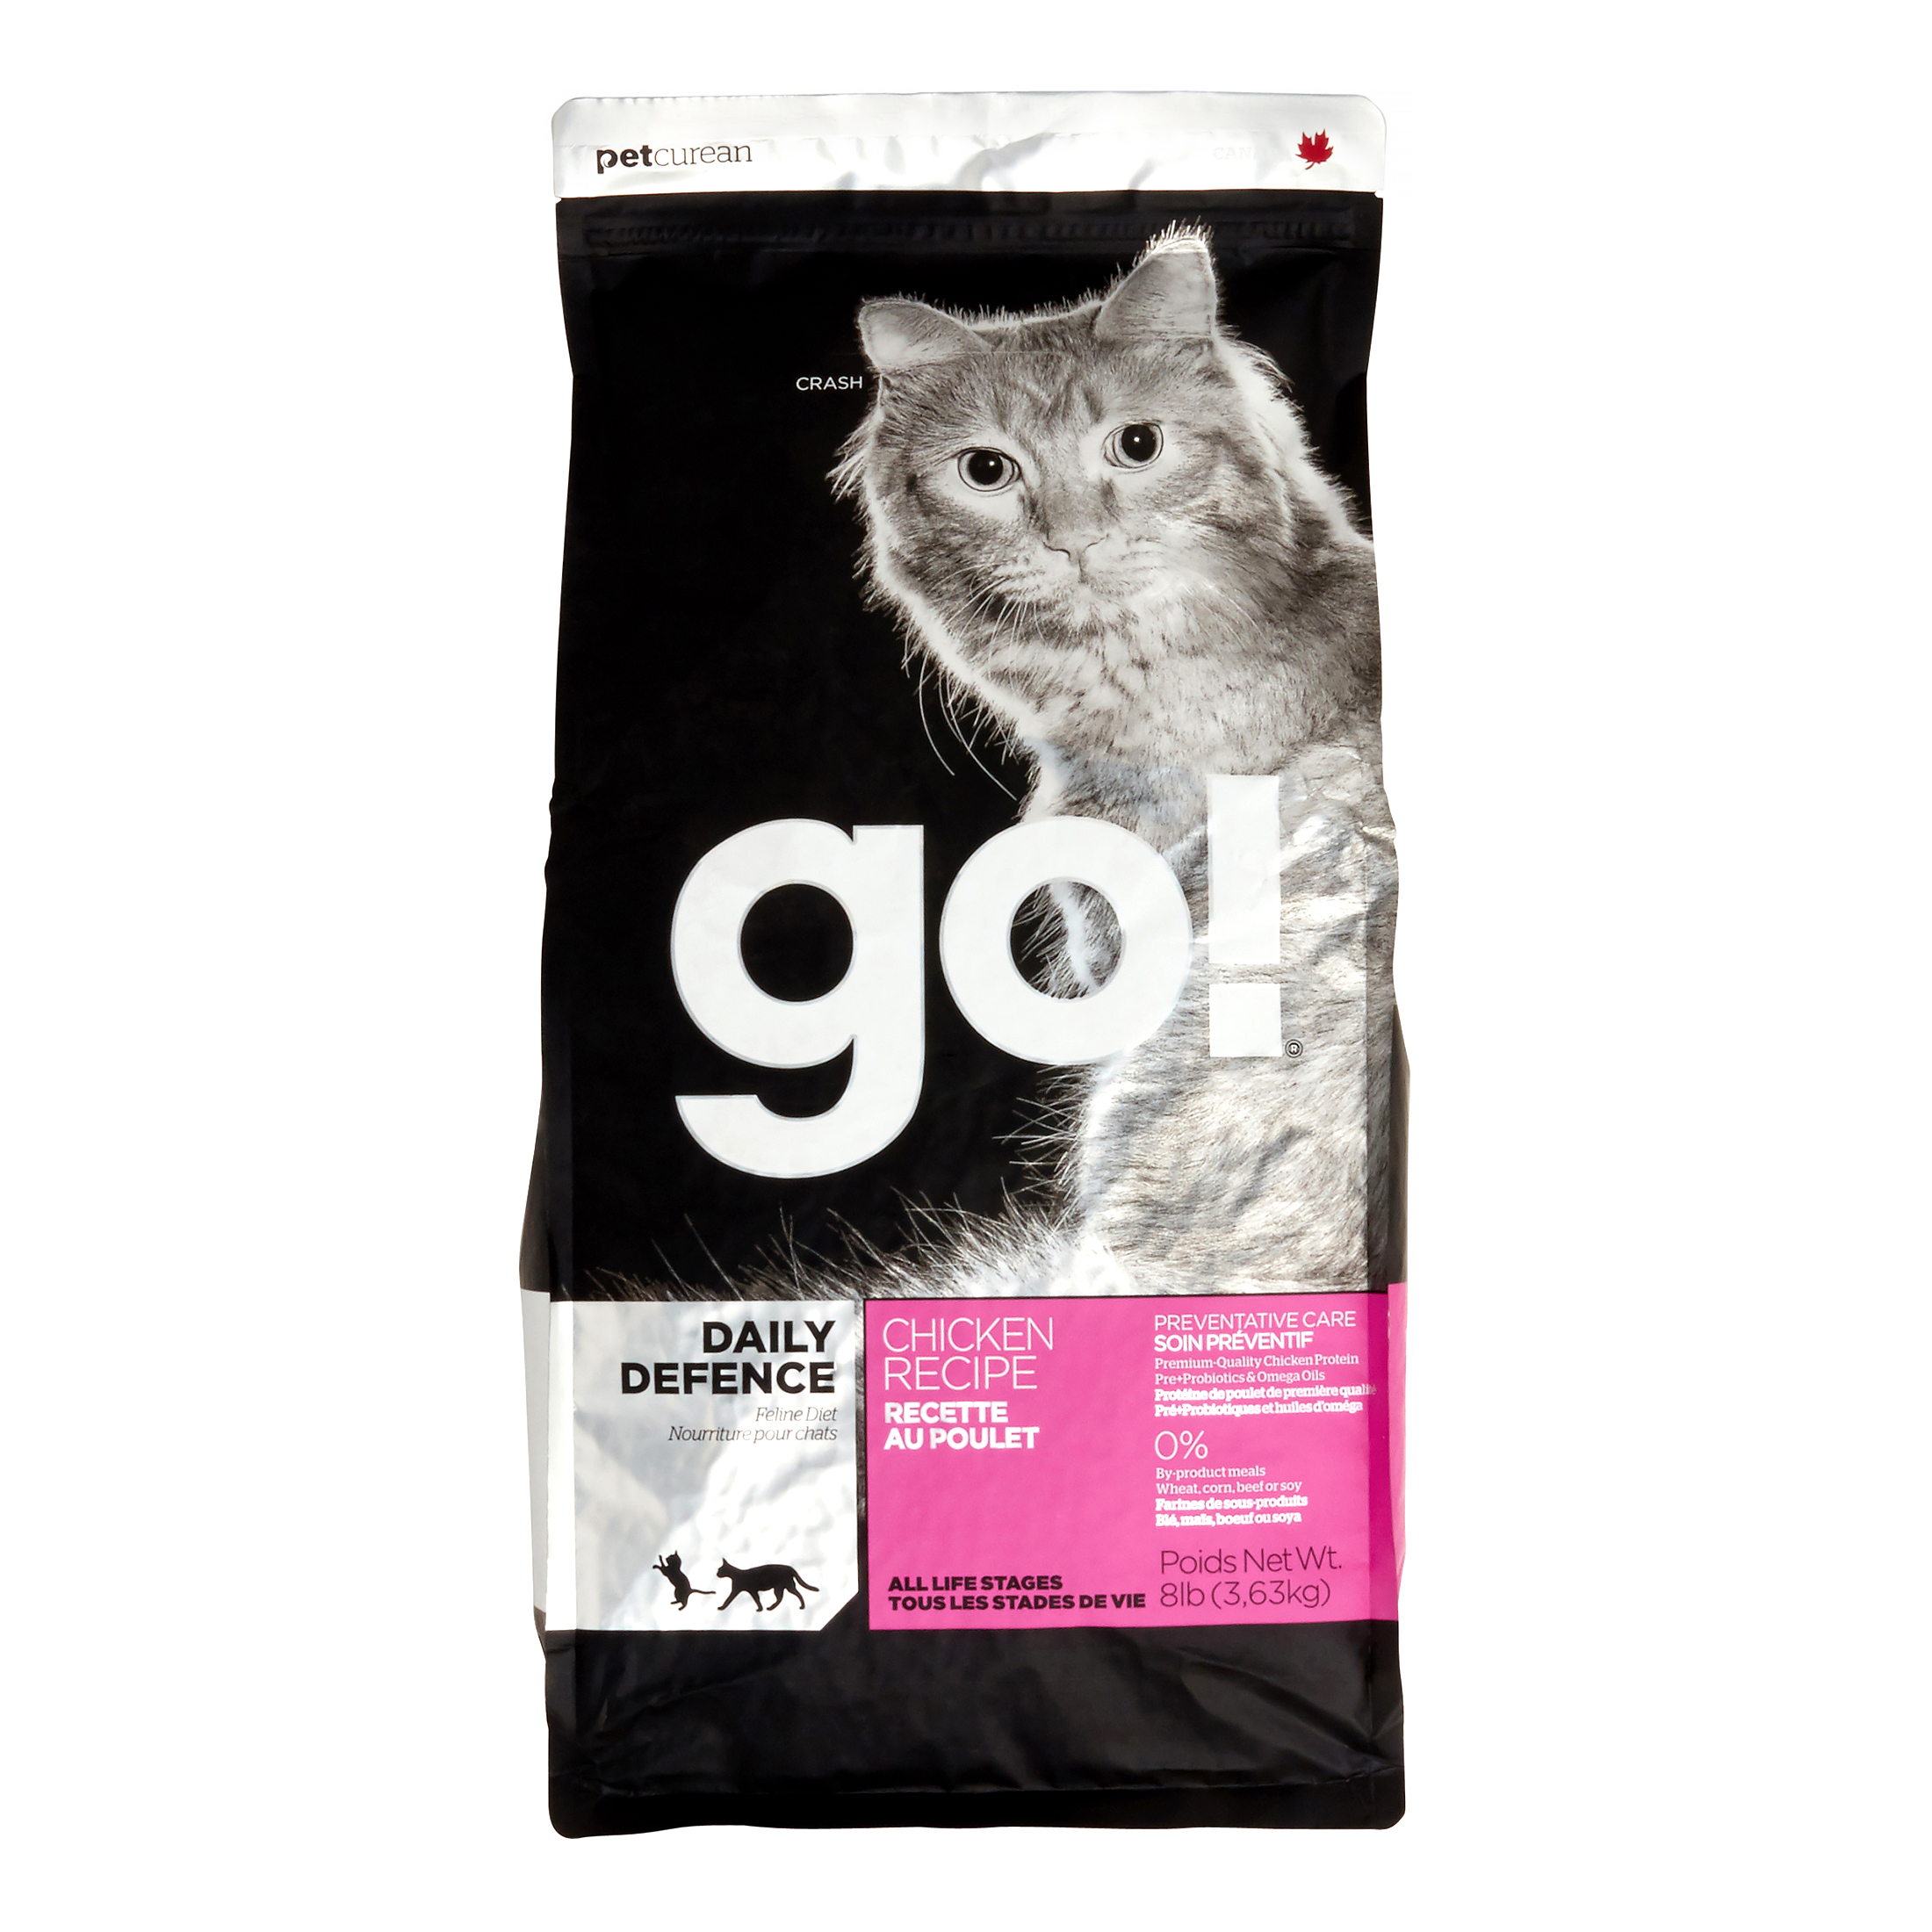 Petcurean Cat Go! Daily Defence Chicken Recipe Dry Cat Food